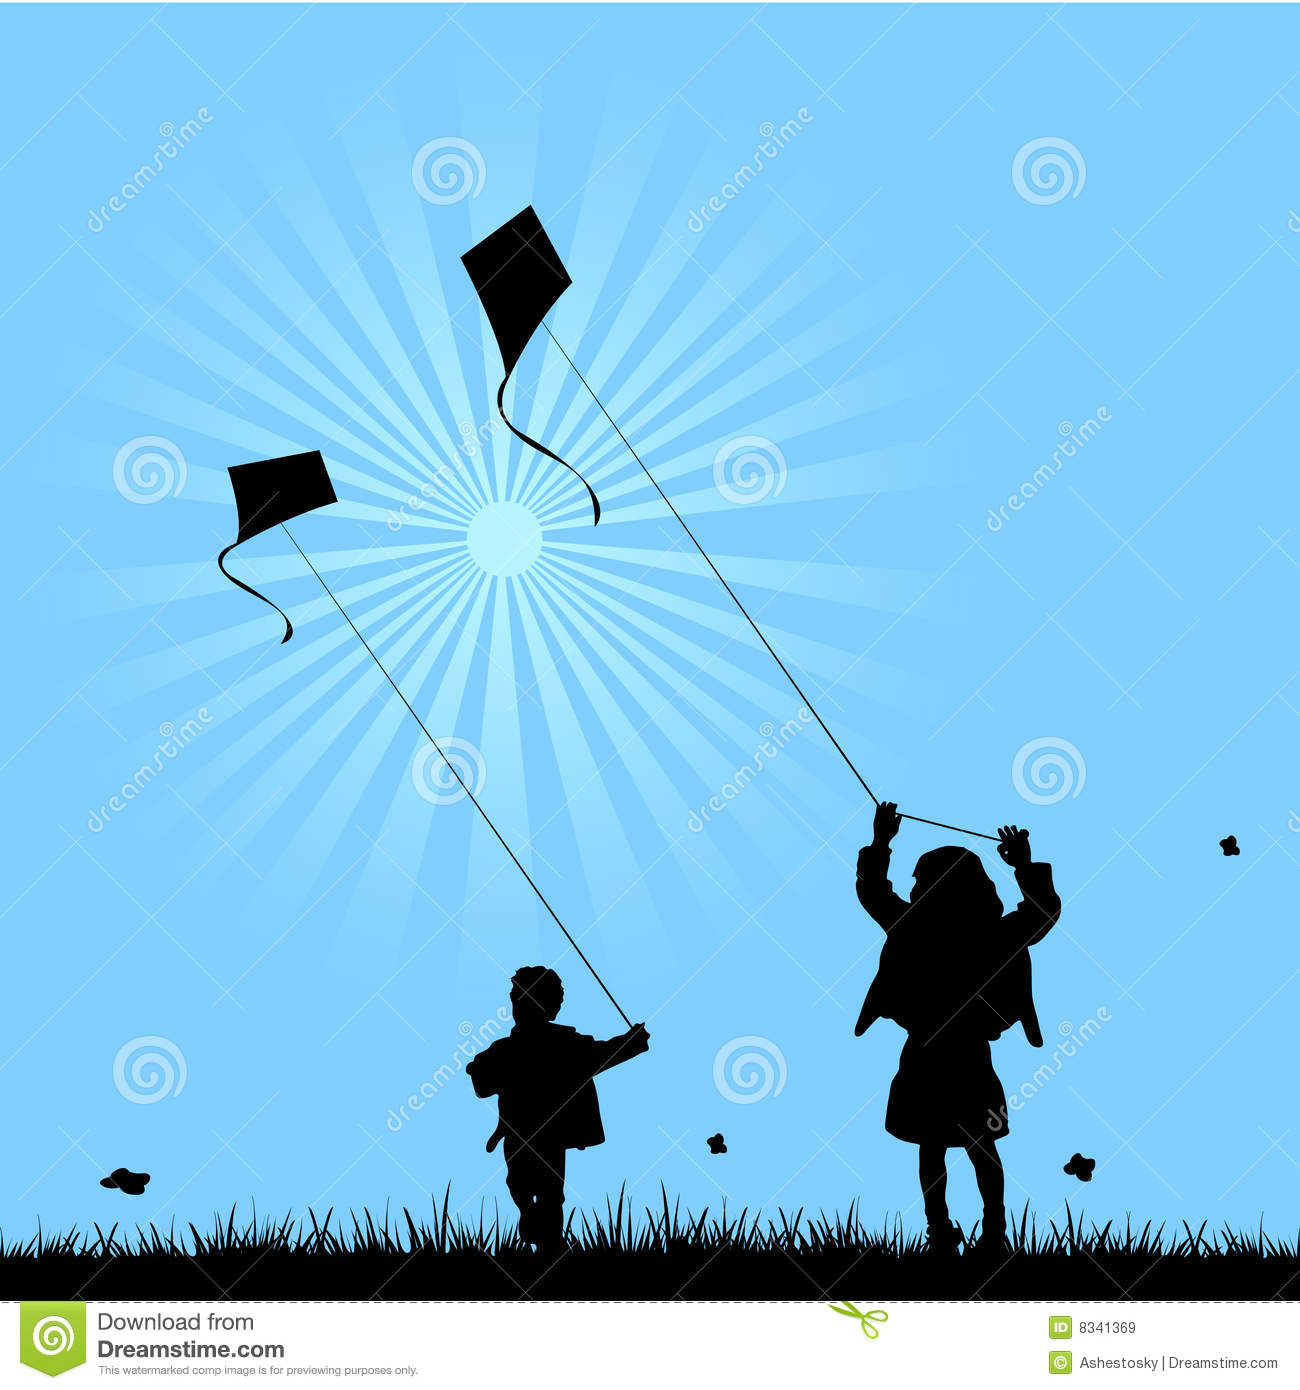 Two kids playing with kites